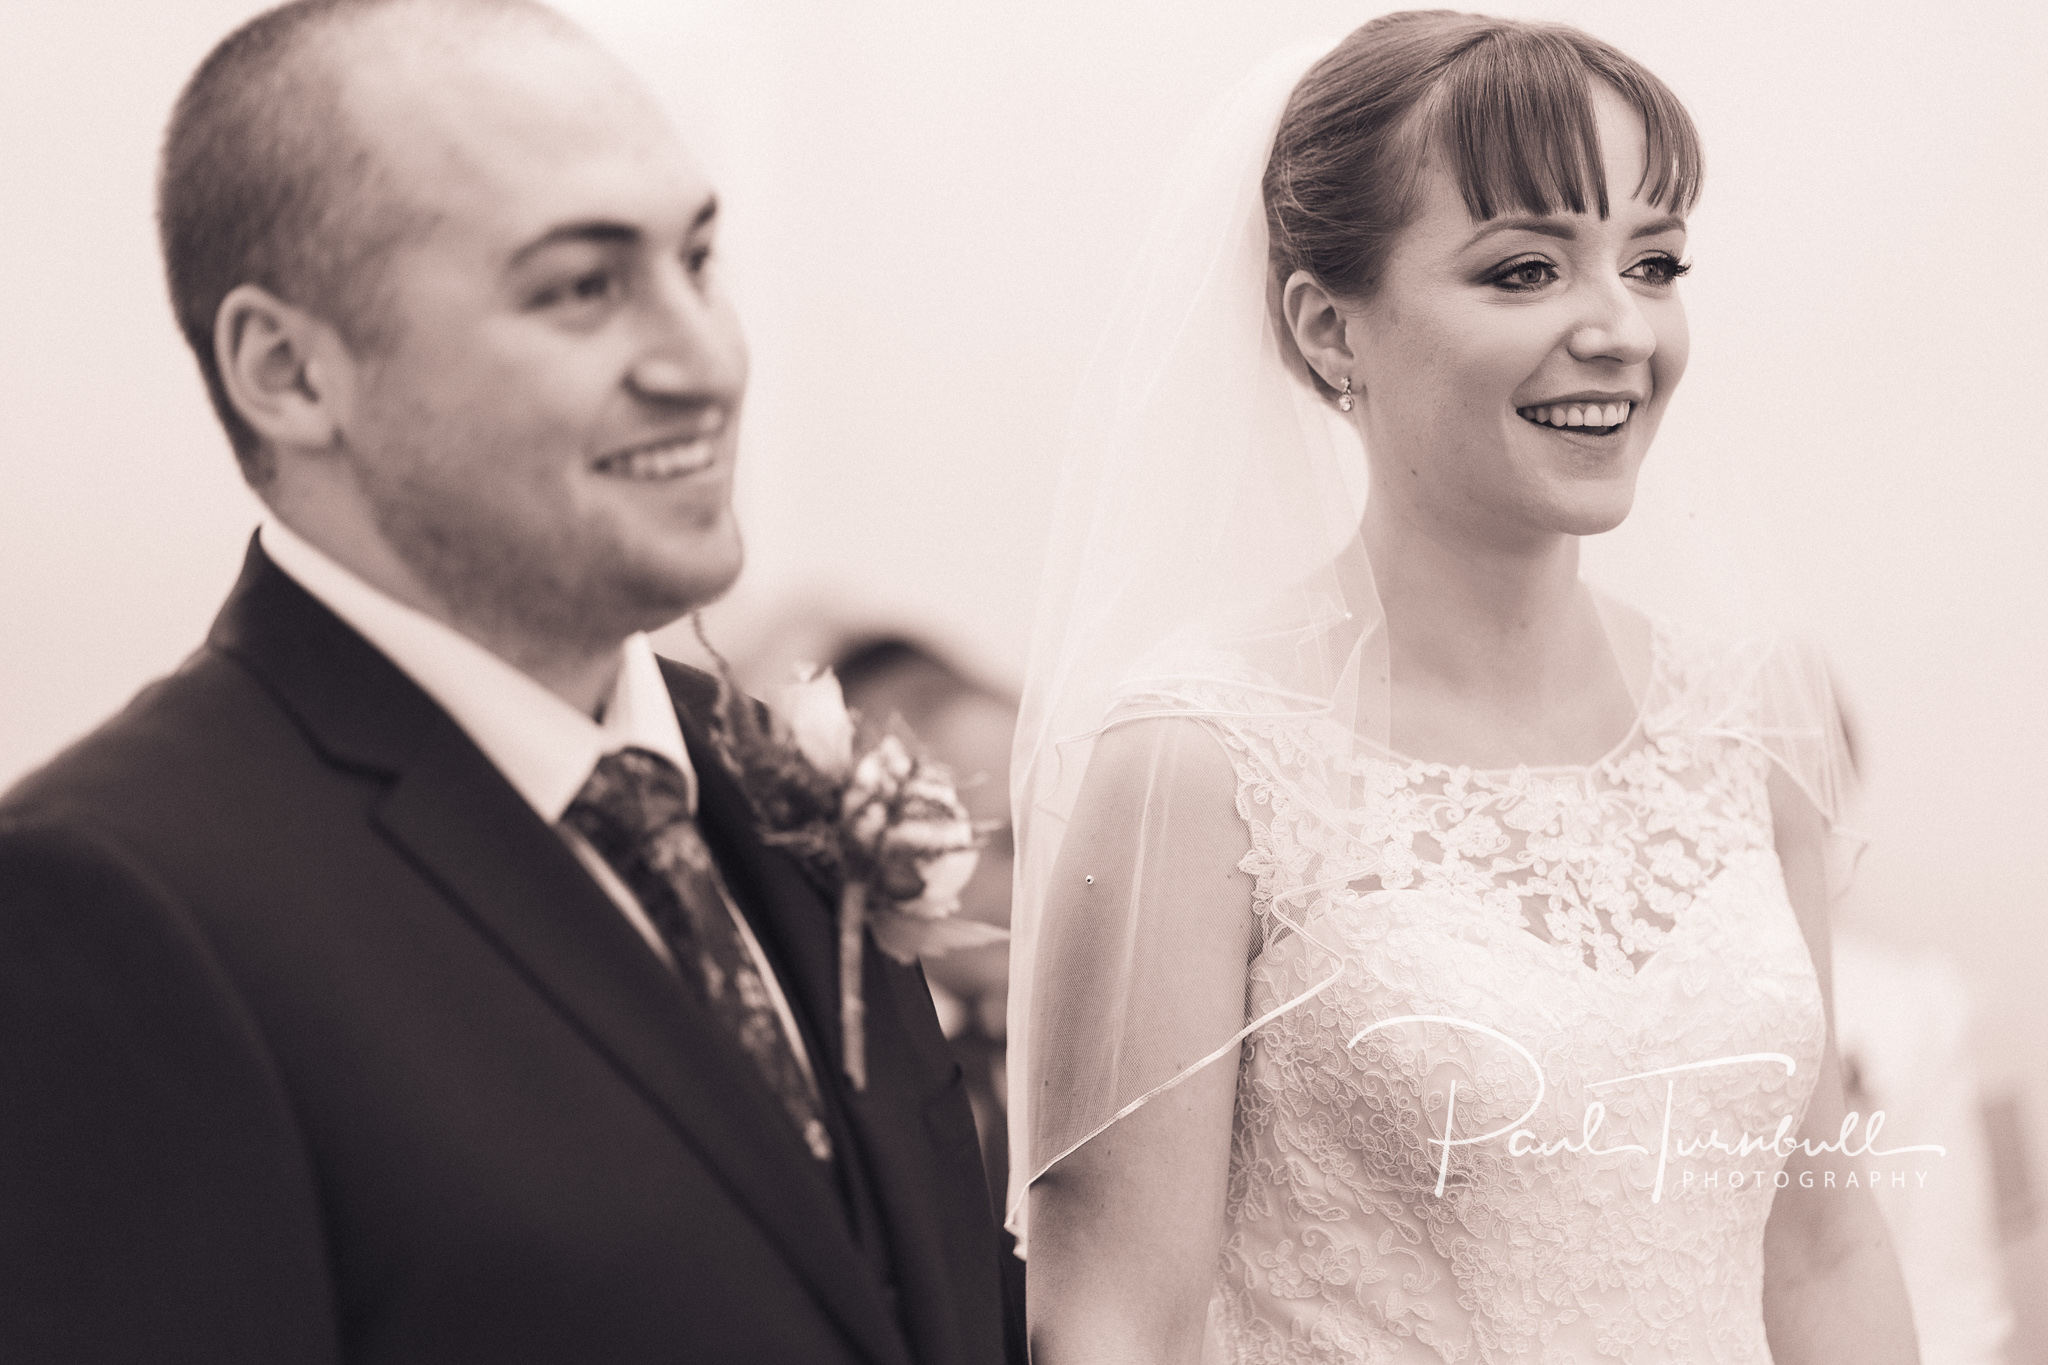 wedding-photographer-pontefract-yorkshire-laura-keanu-030.jpg